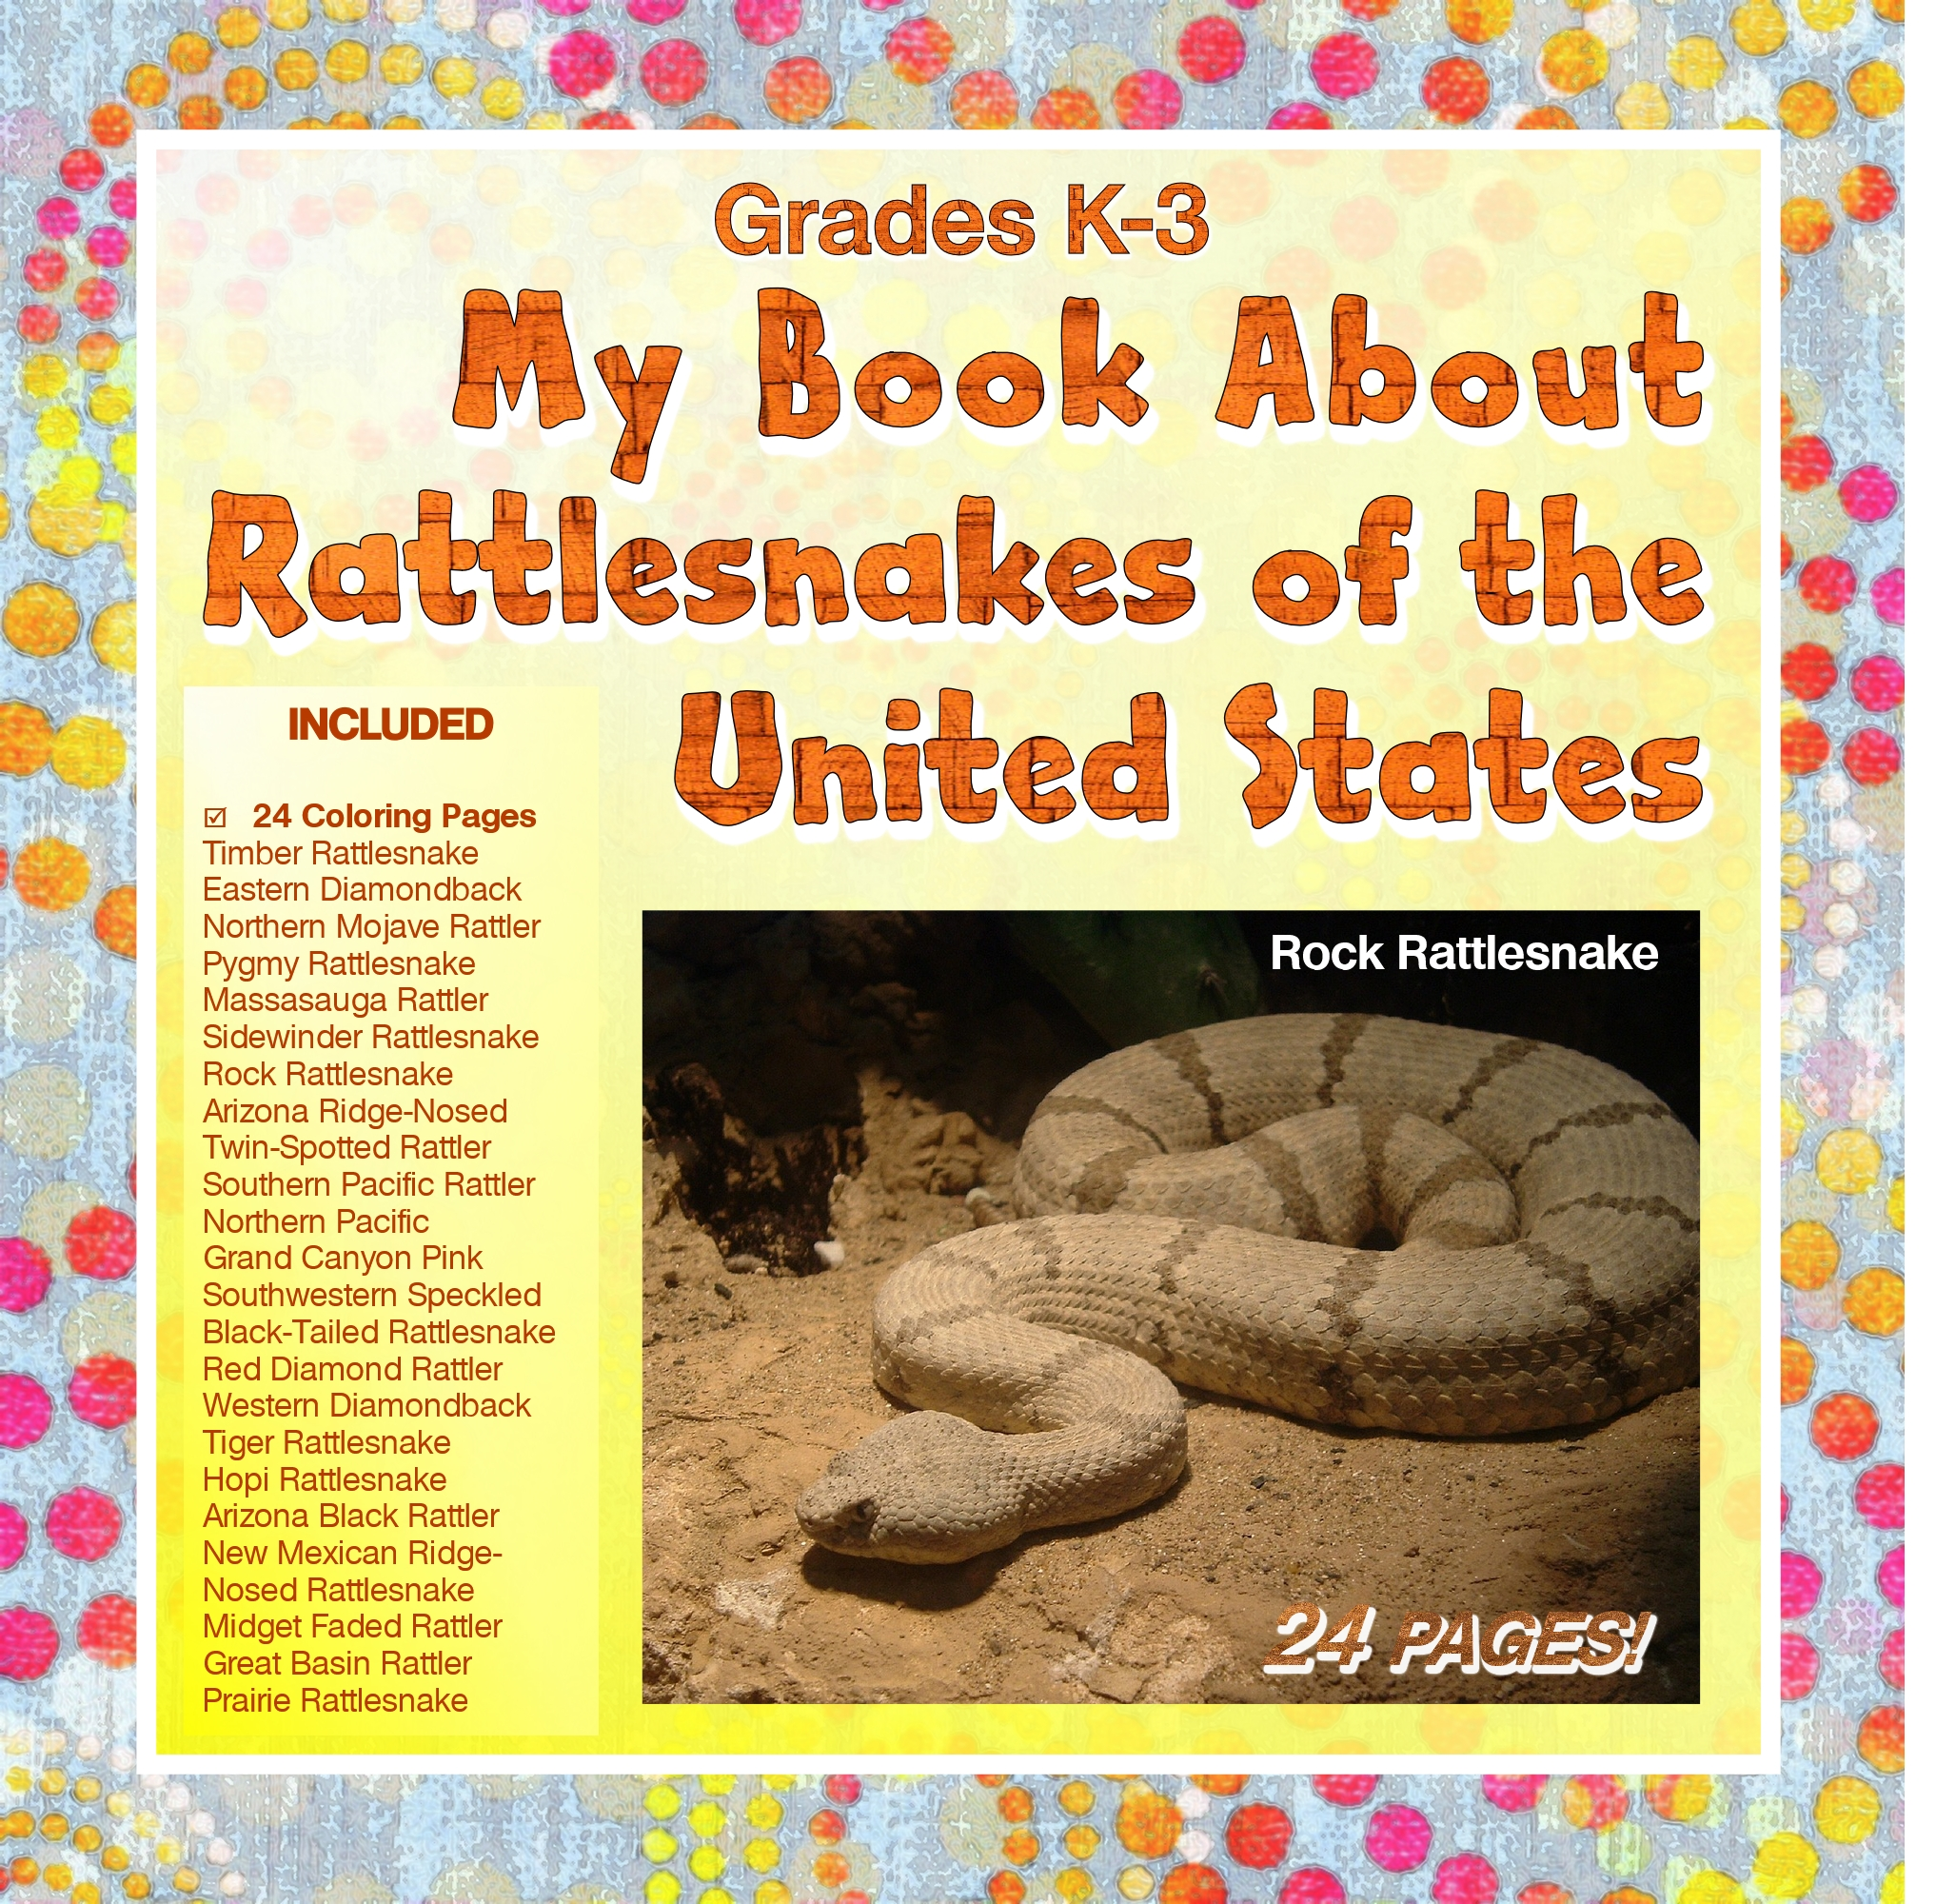 A Book Cover, Colorful Dotted Border, Yellow Background, Orange letters My Book About United States Rattlesnakes, with an image of a Rock Rattlesnake and a list of US Rattlers